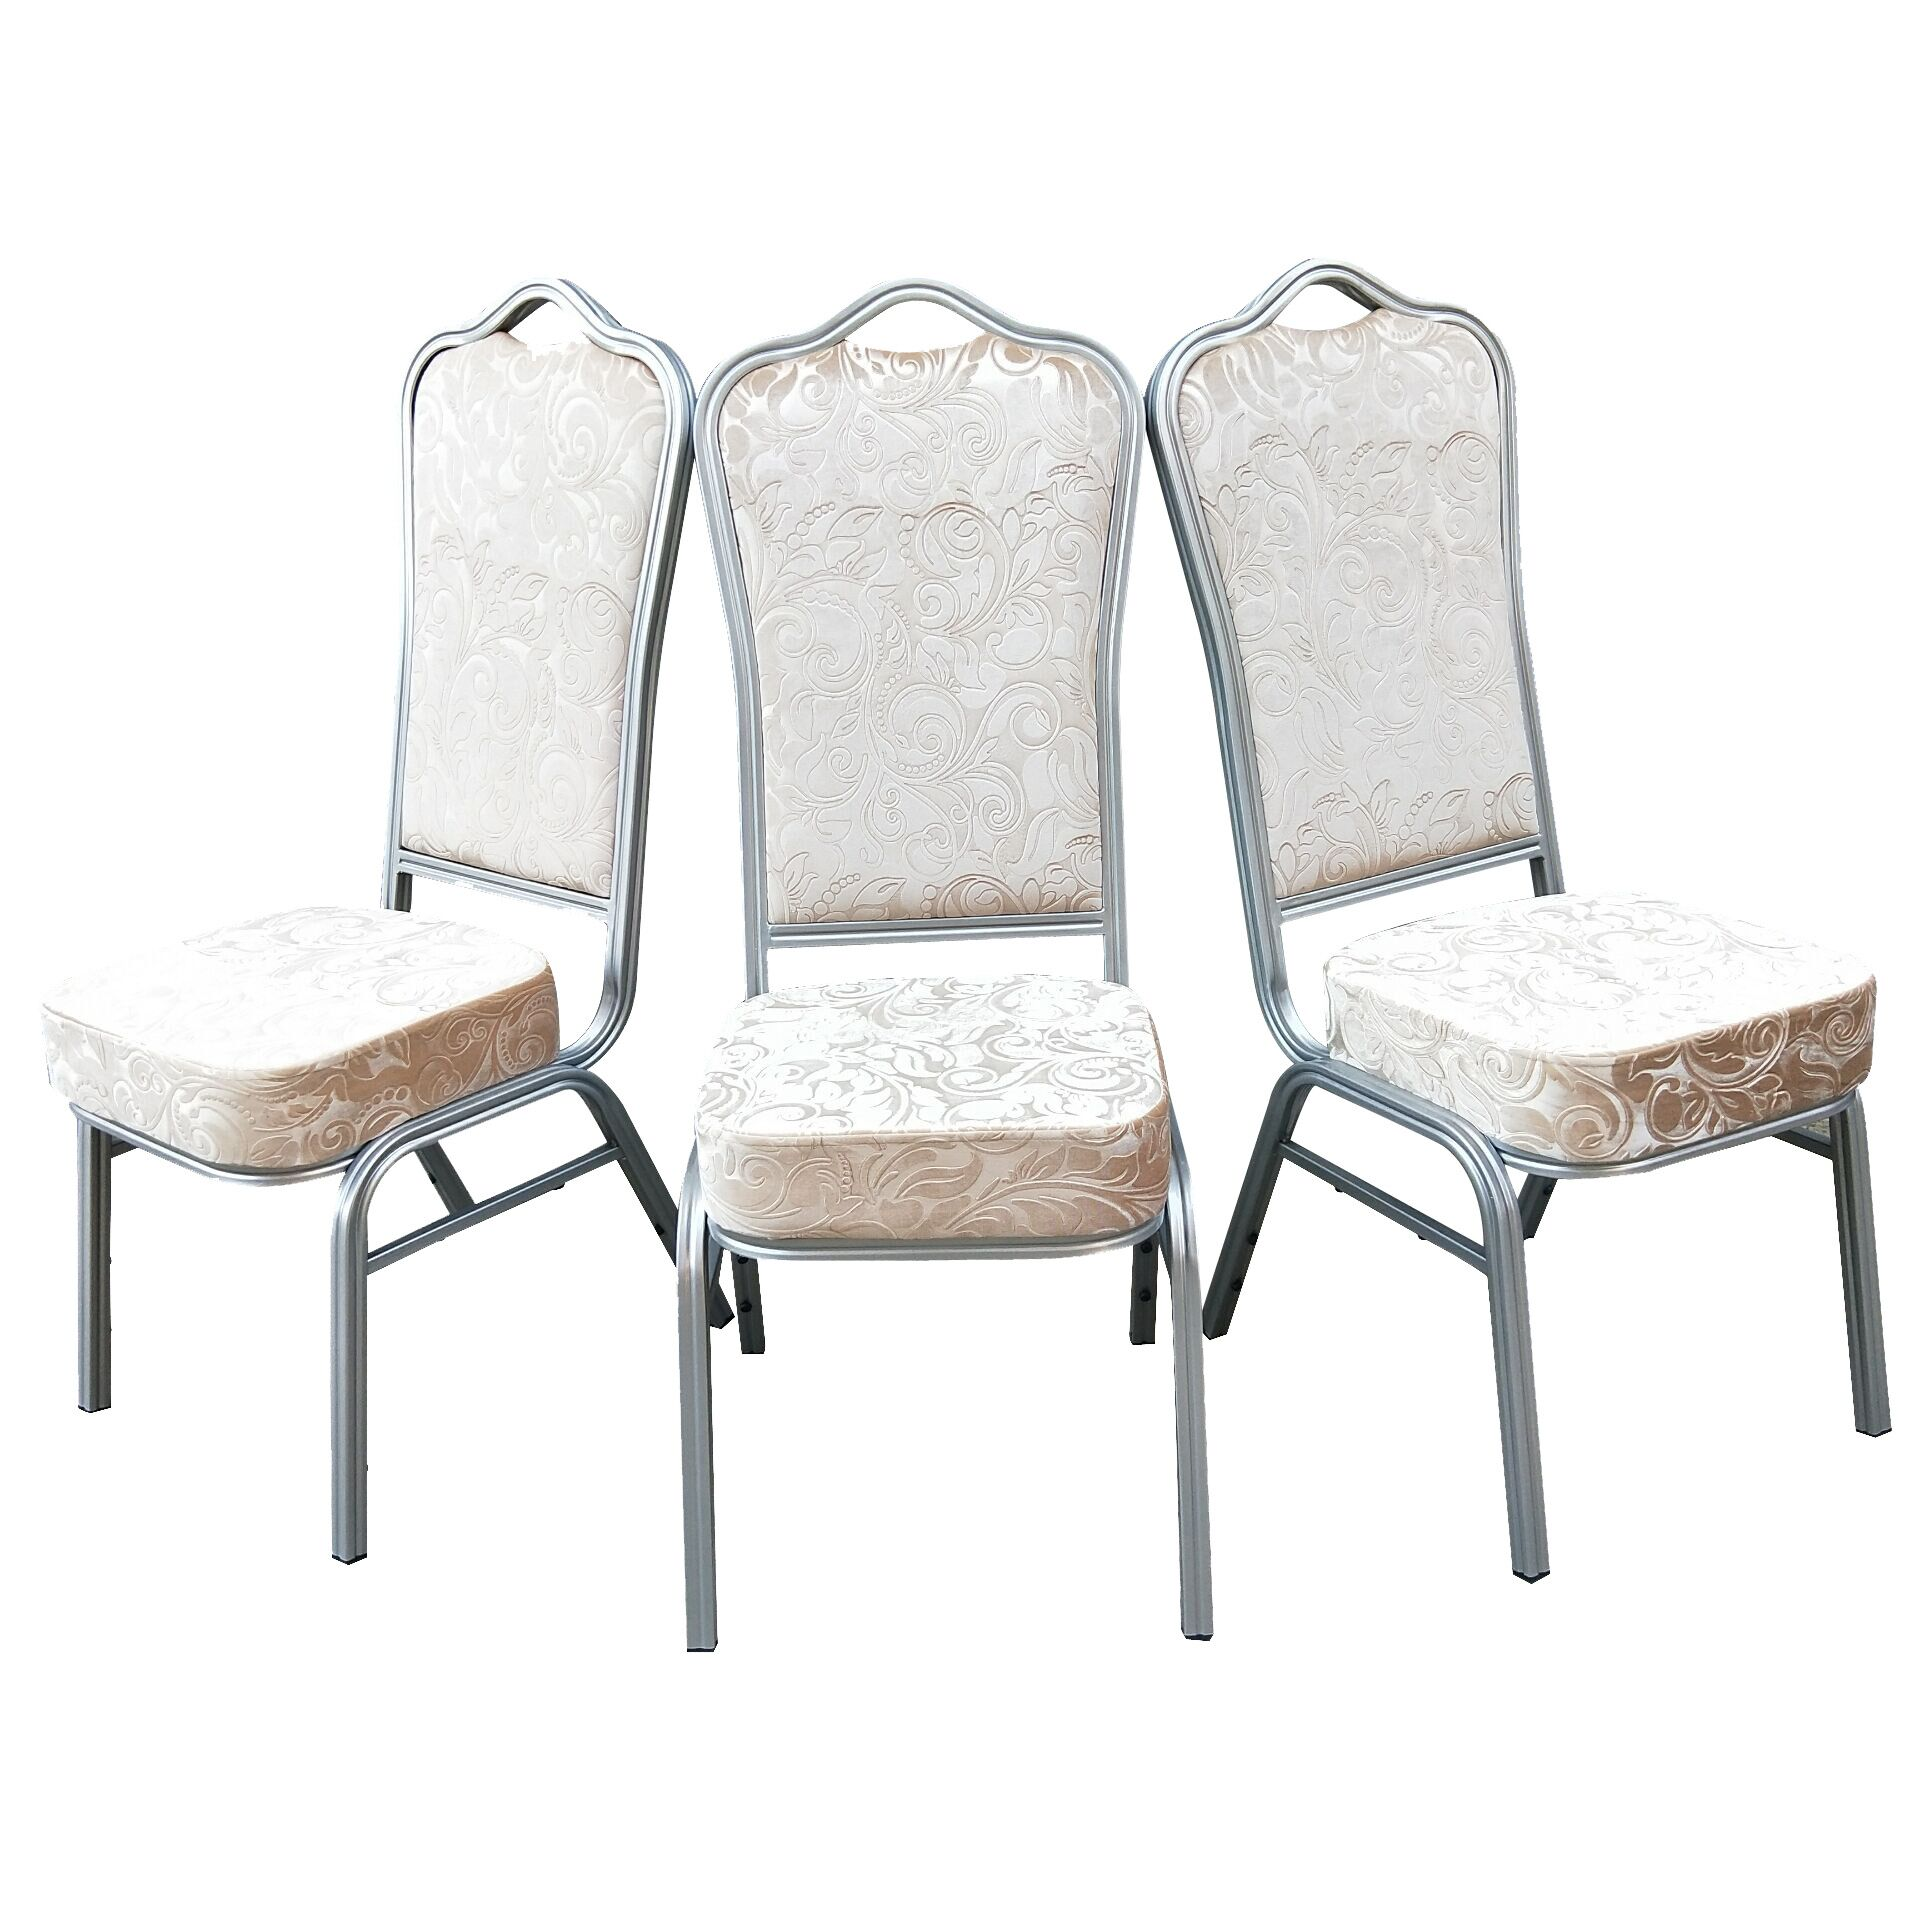 factory low price Interlocking Jesus House Of God Chairs -